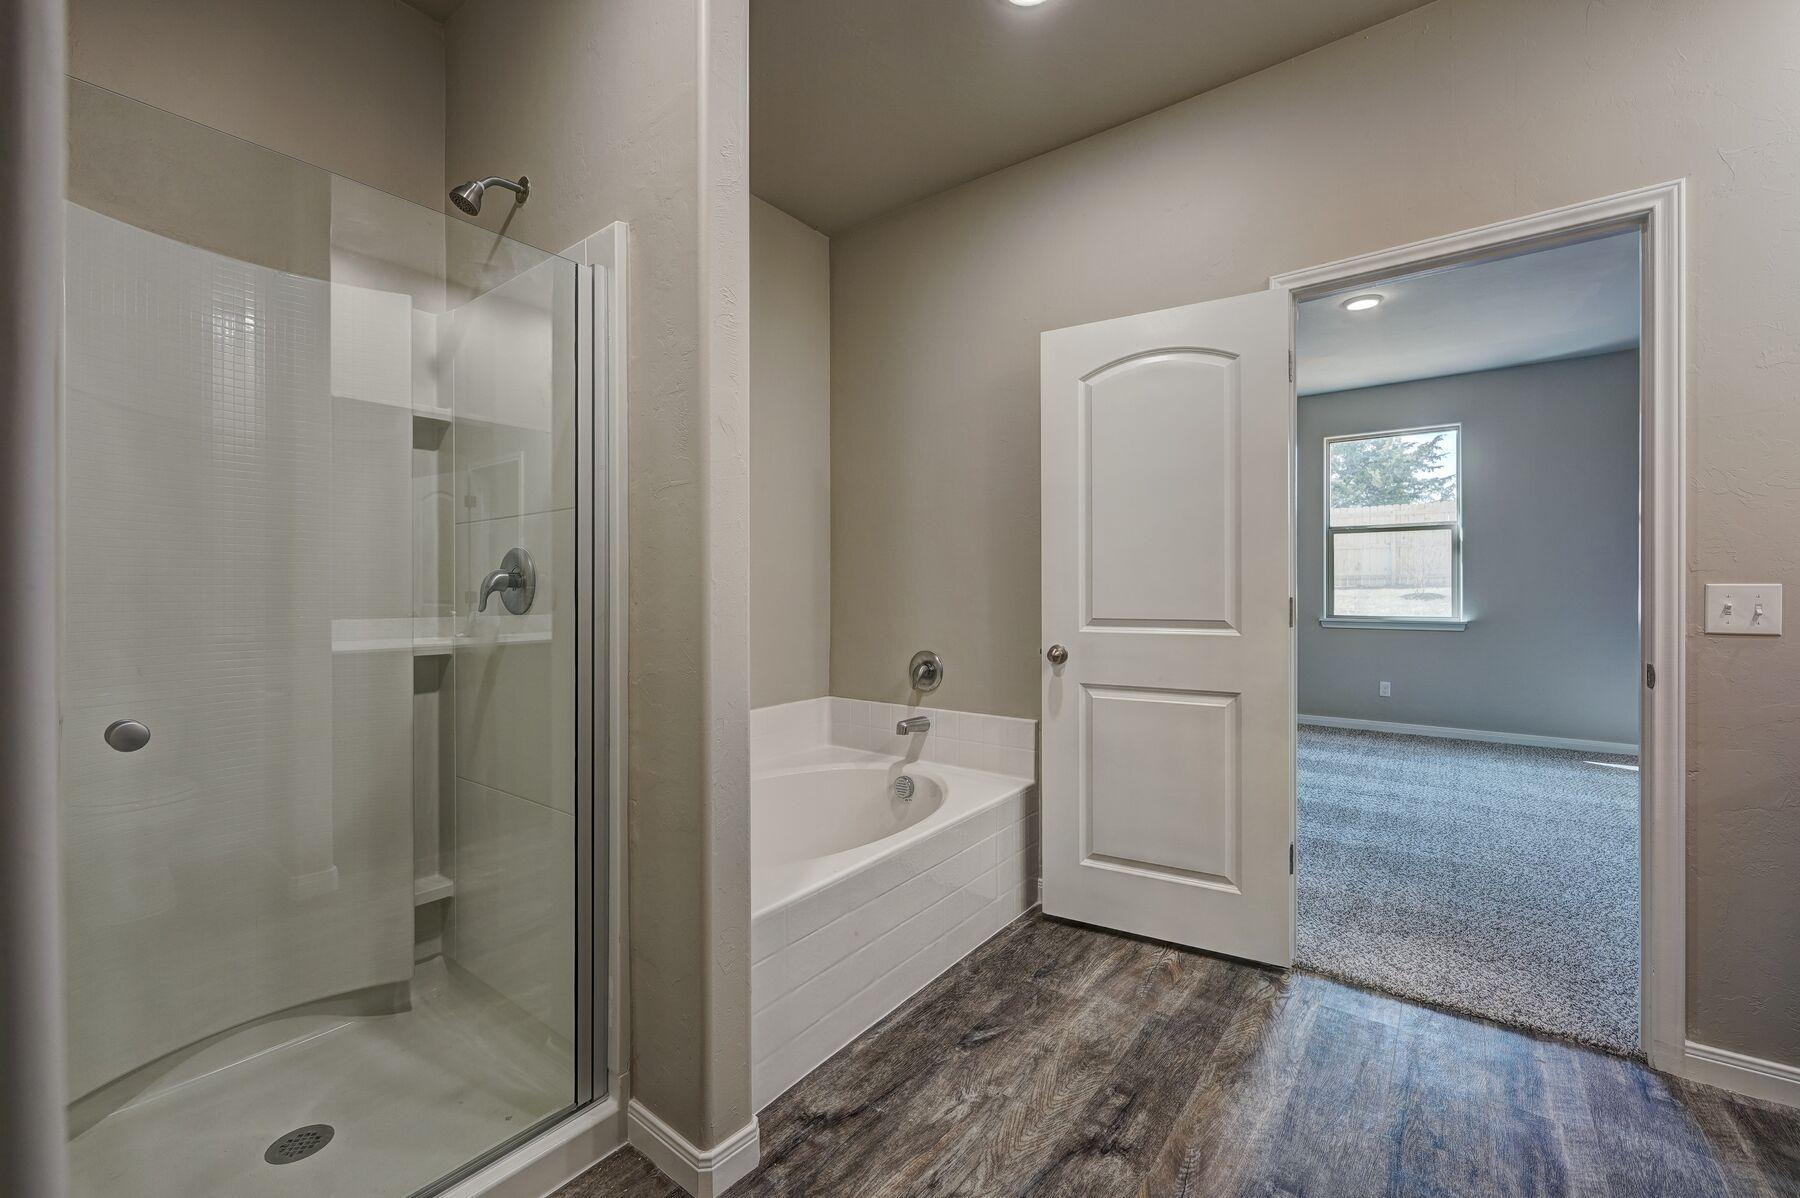 Bathroom featured in the Sabine By LGI Homes in Oklahoma City, OK